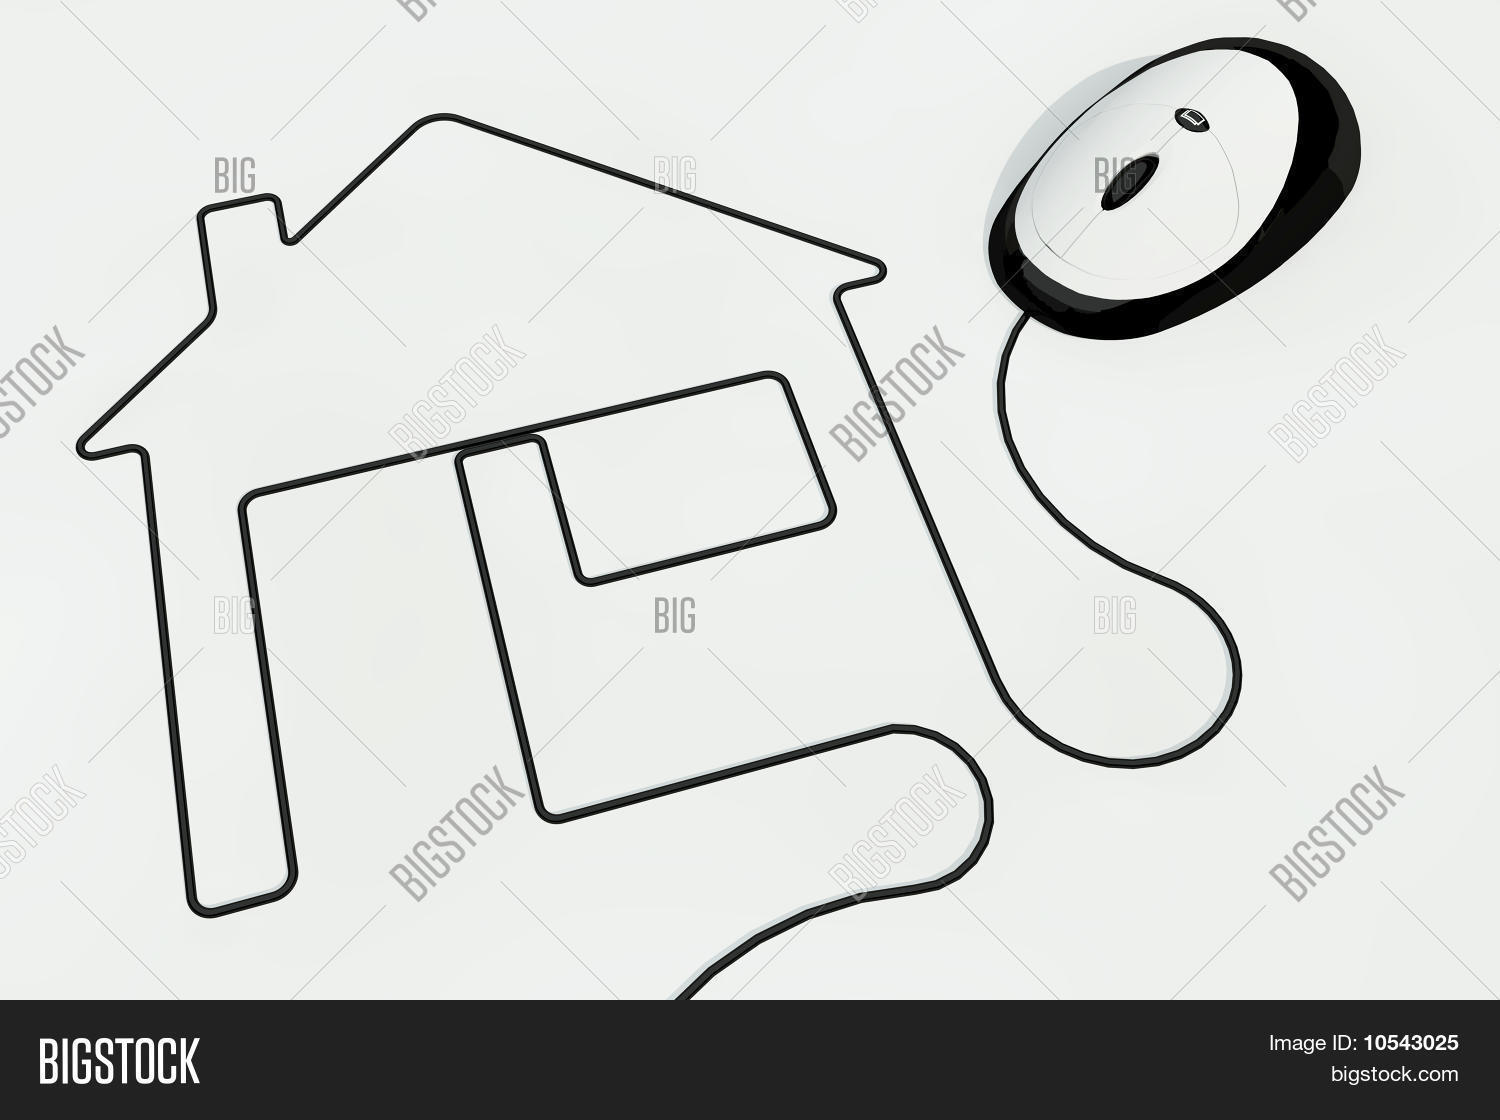 house drawn mouse wire image photo free trial bigstock Cord Clip Art house drawn with mouse wire